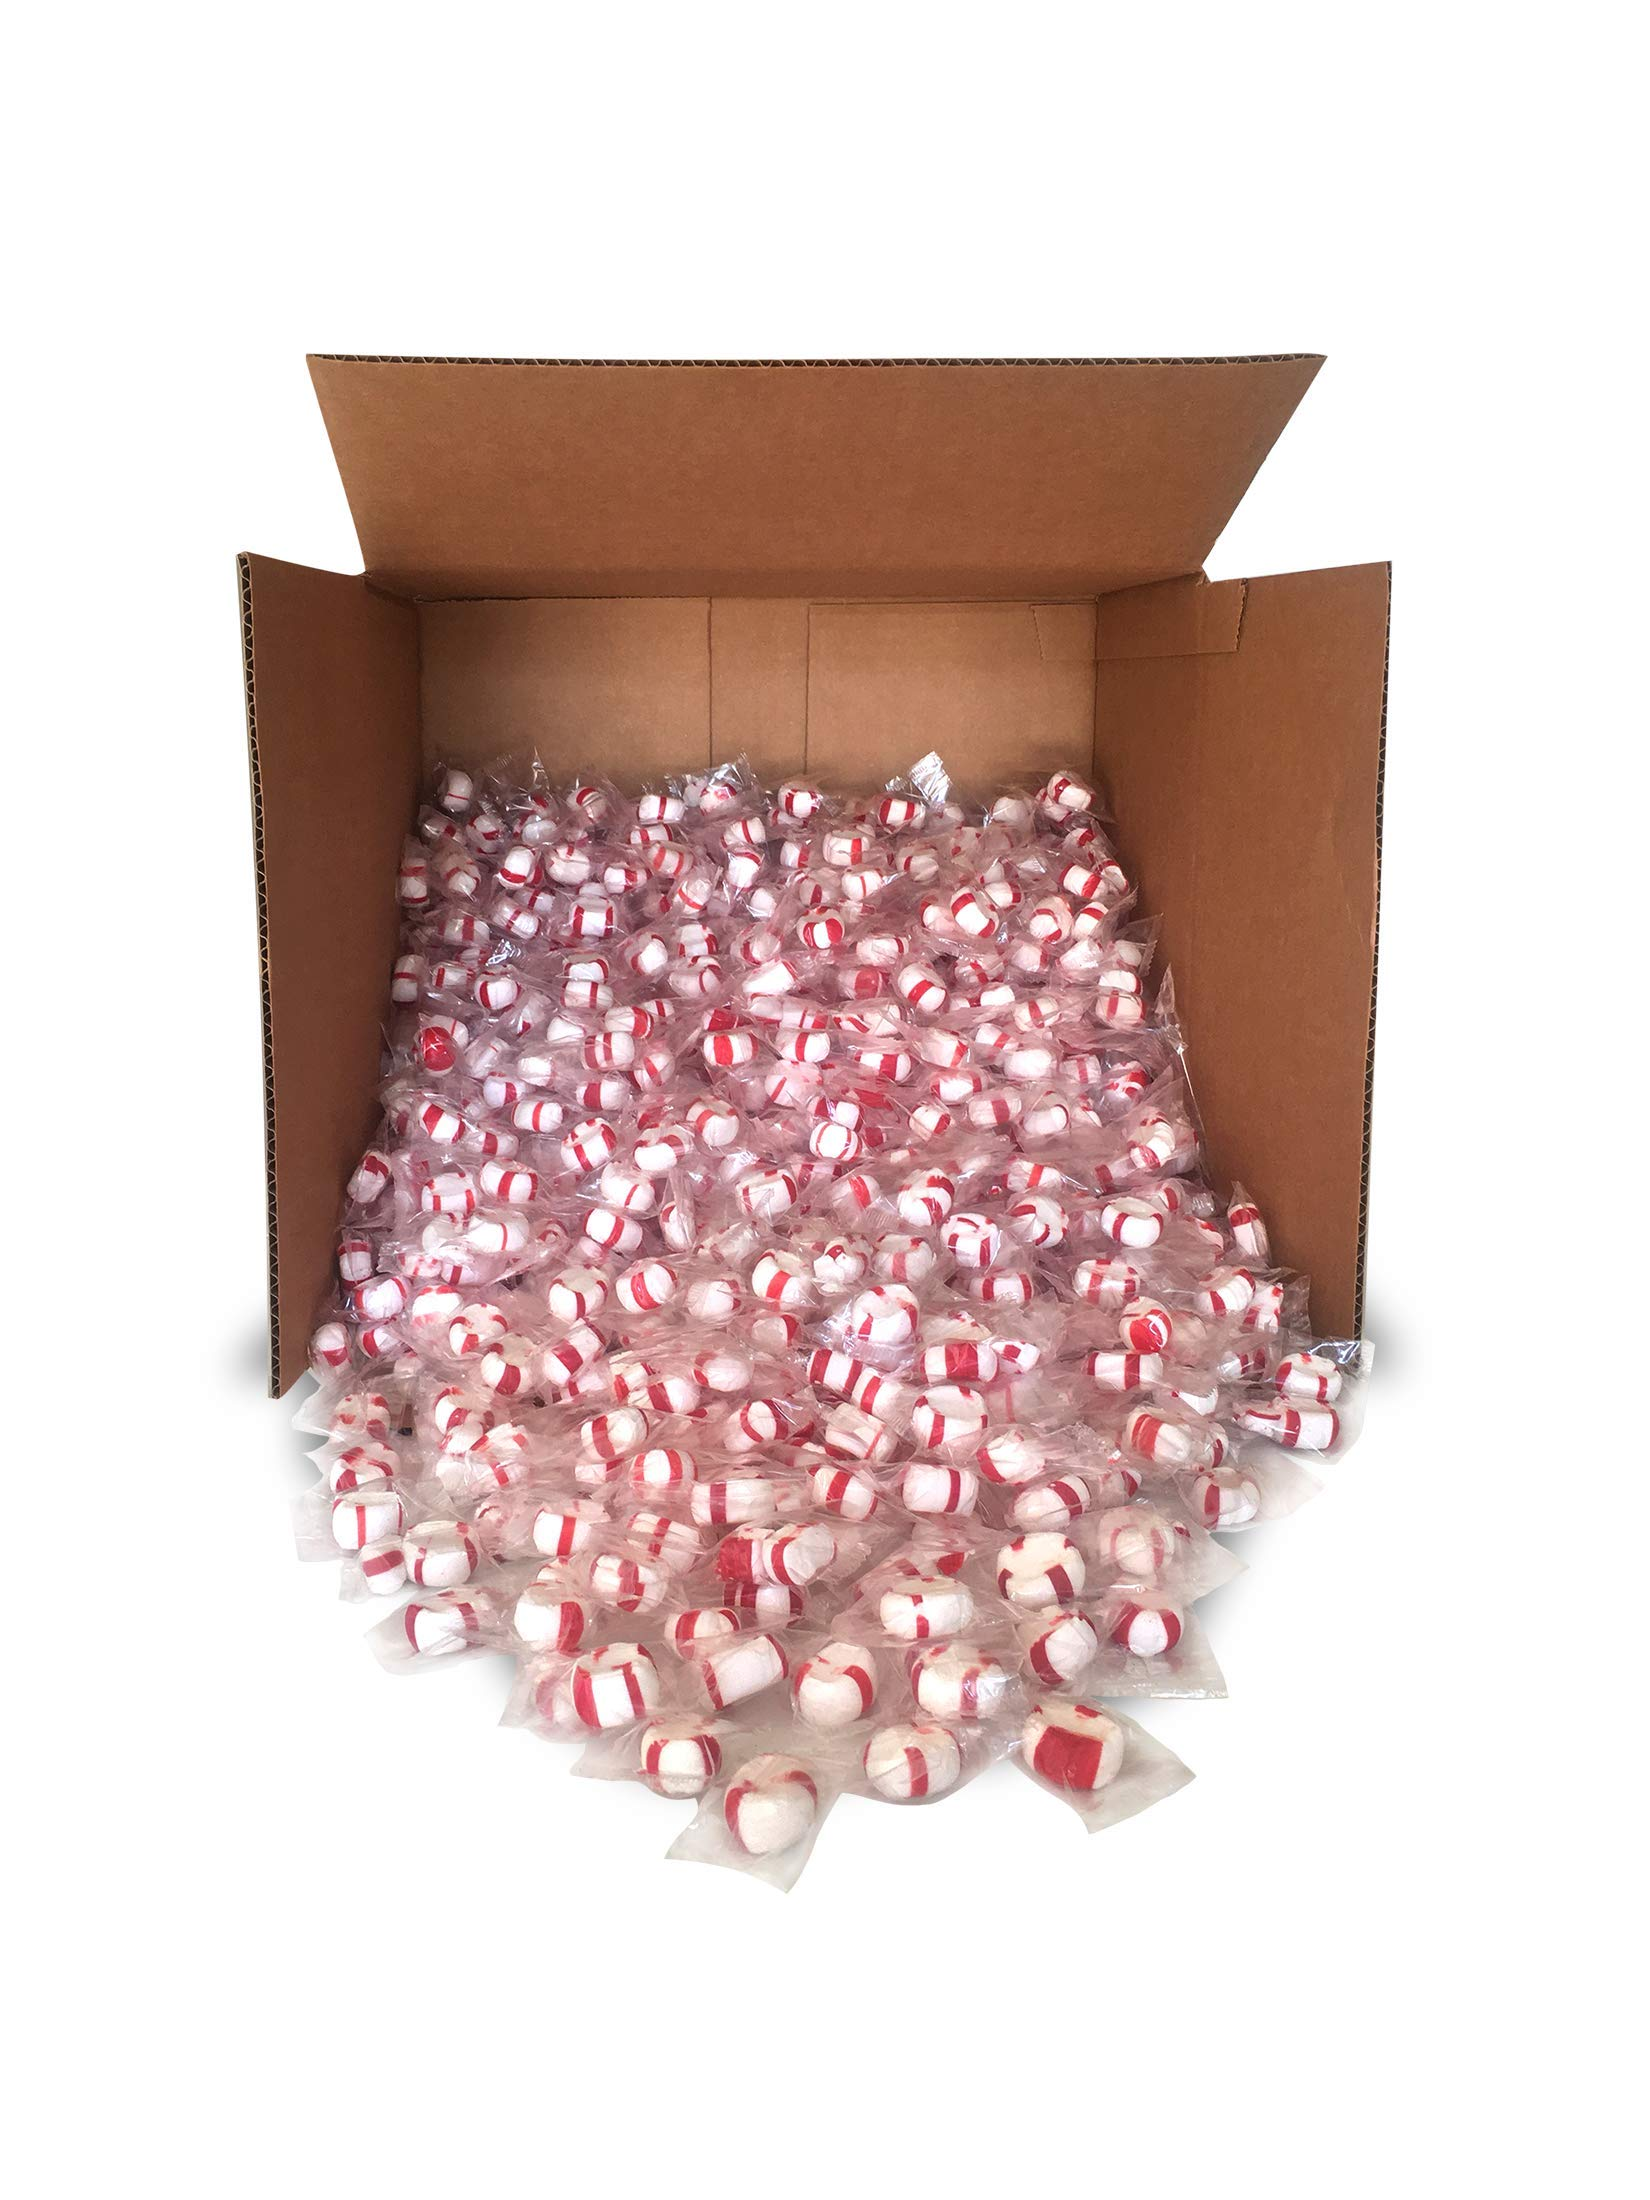 Red Bird Peppermint Puffs 20 lb bulk Individually Wrapped by RED BIRD SOUTHERN REFRESH - MINTS (Image #1)